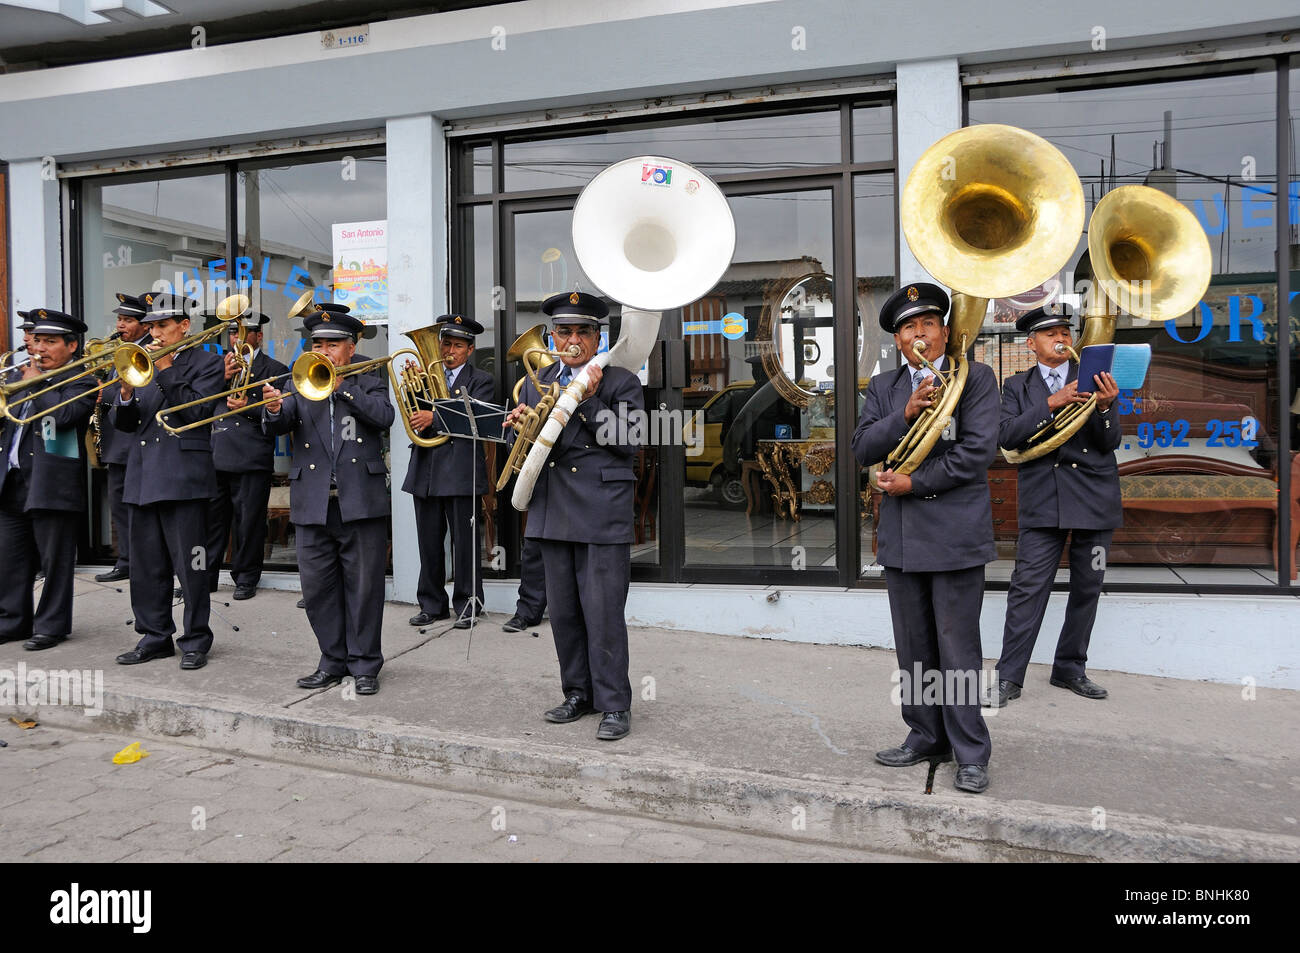 Ecuador Military Music Band Ibarra city Andes Mountains musicians uniforms people concert group men - Stock Image